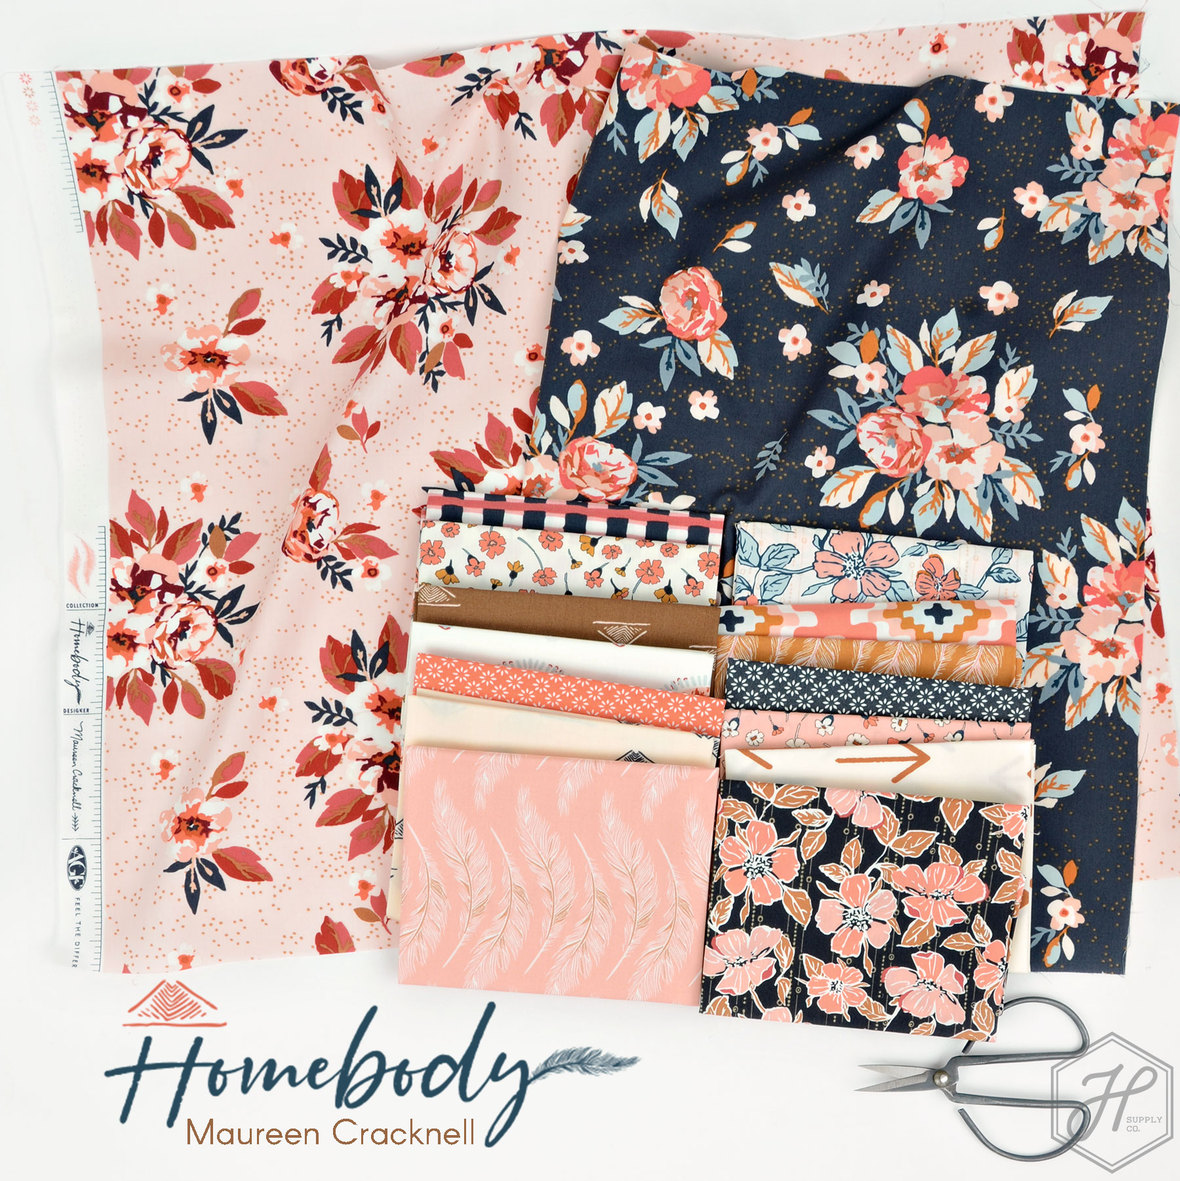 Homebody-Fabric-Maureen-Cracknell-for-Art-Gallery-at-Hawthorne-Supply-Co